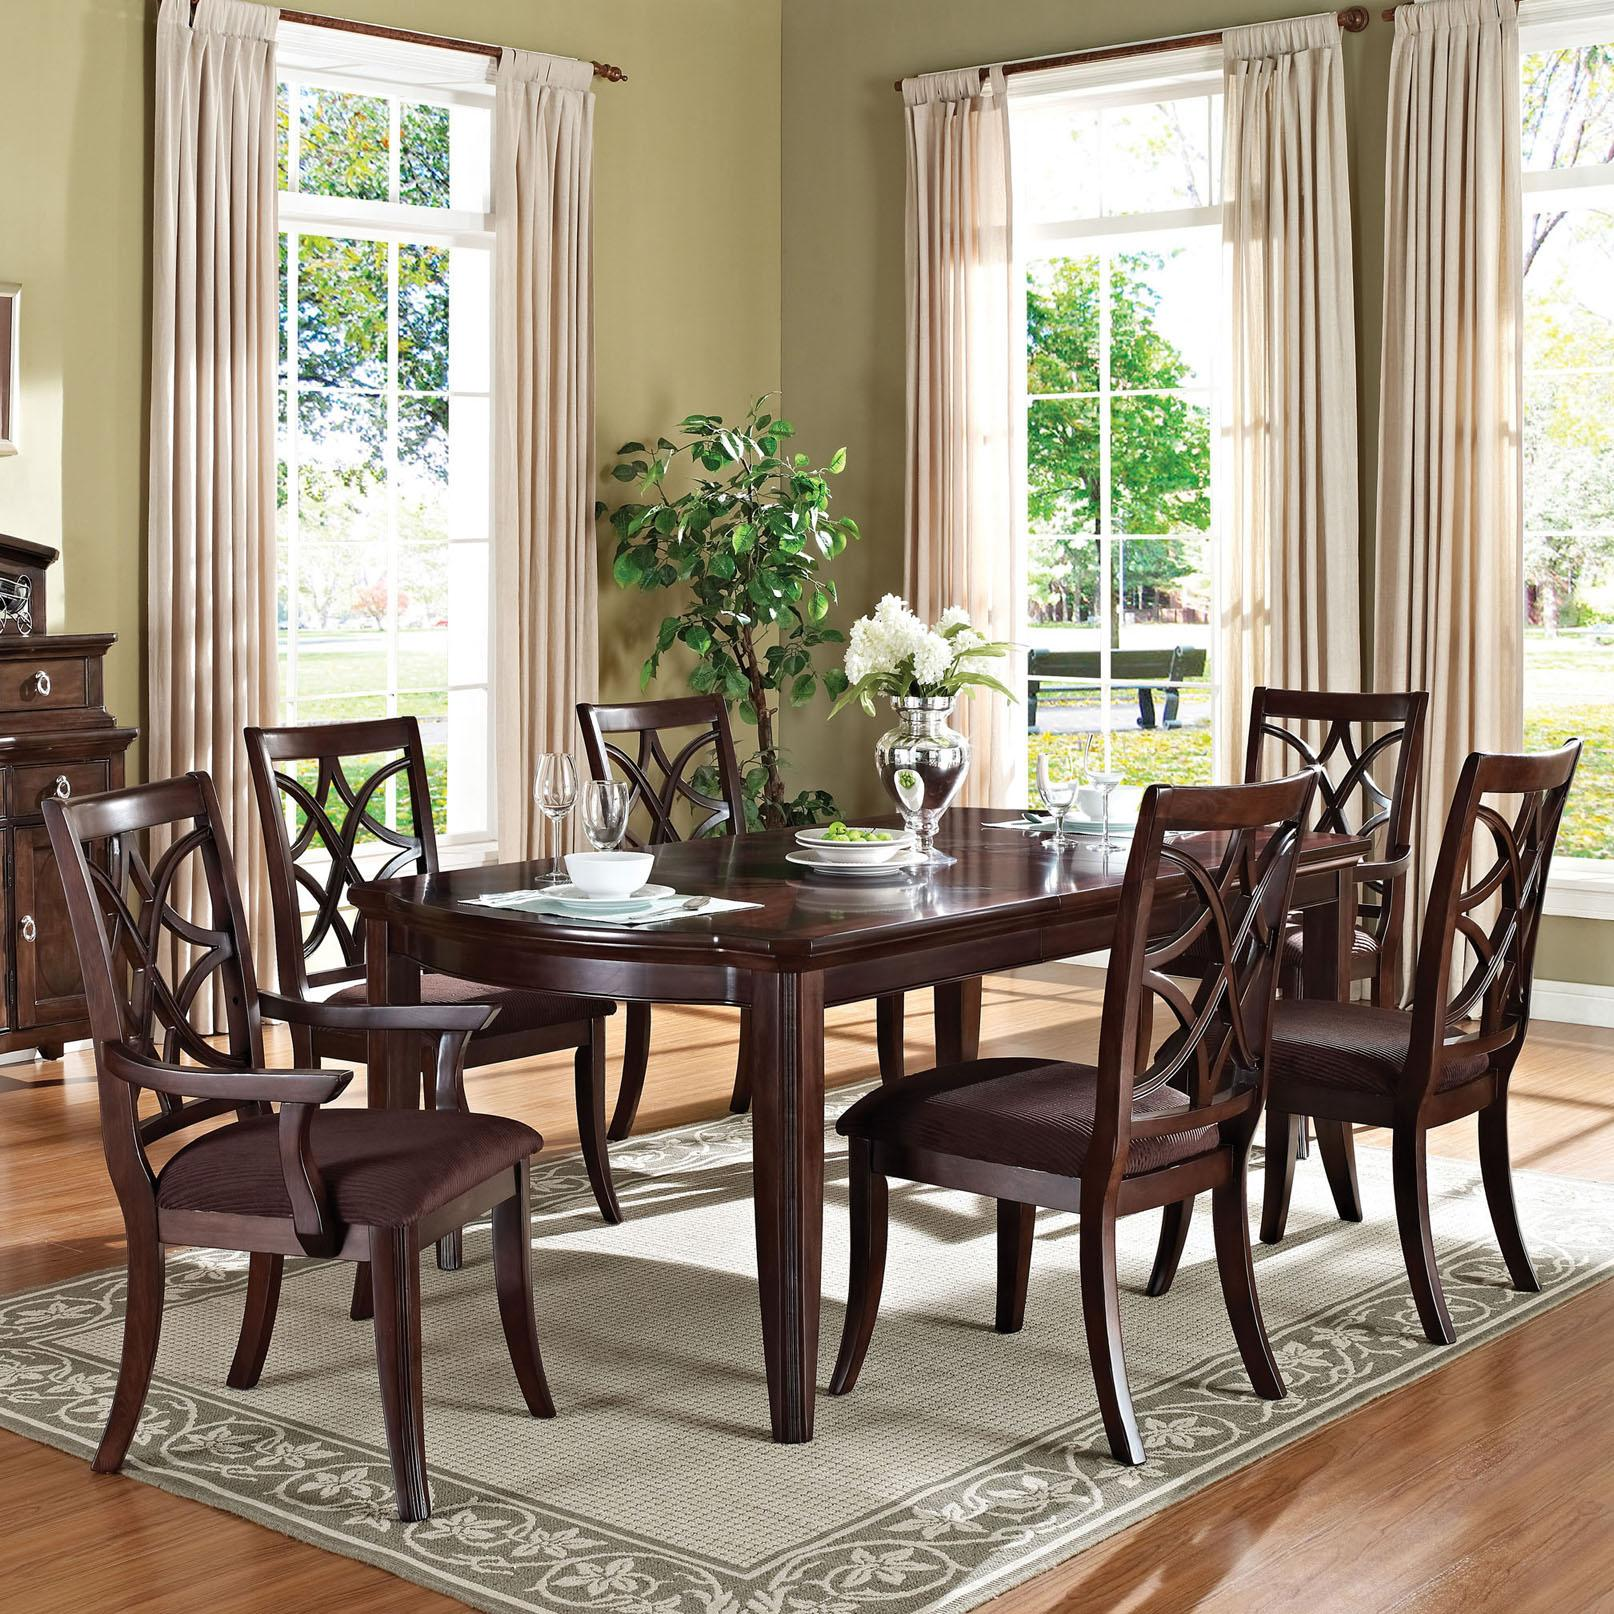 Acme Furniture Keenan Transitional Dining Table and Chair Set - Item Number: 60255+60257+60258